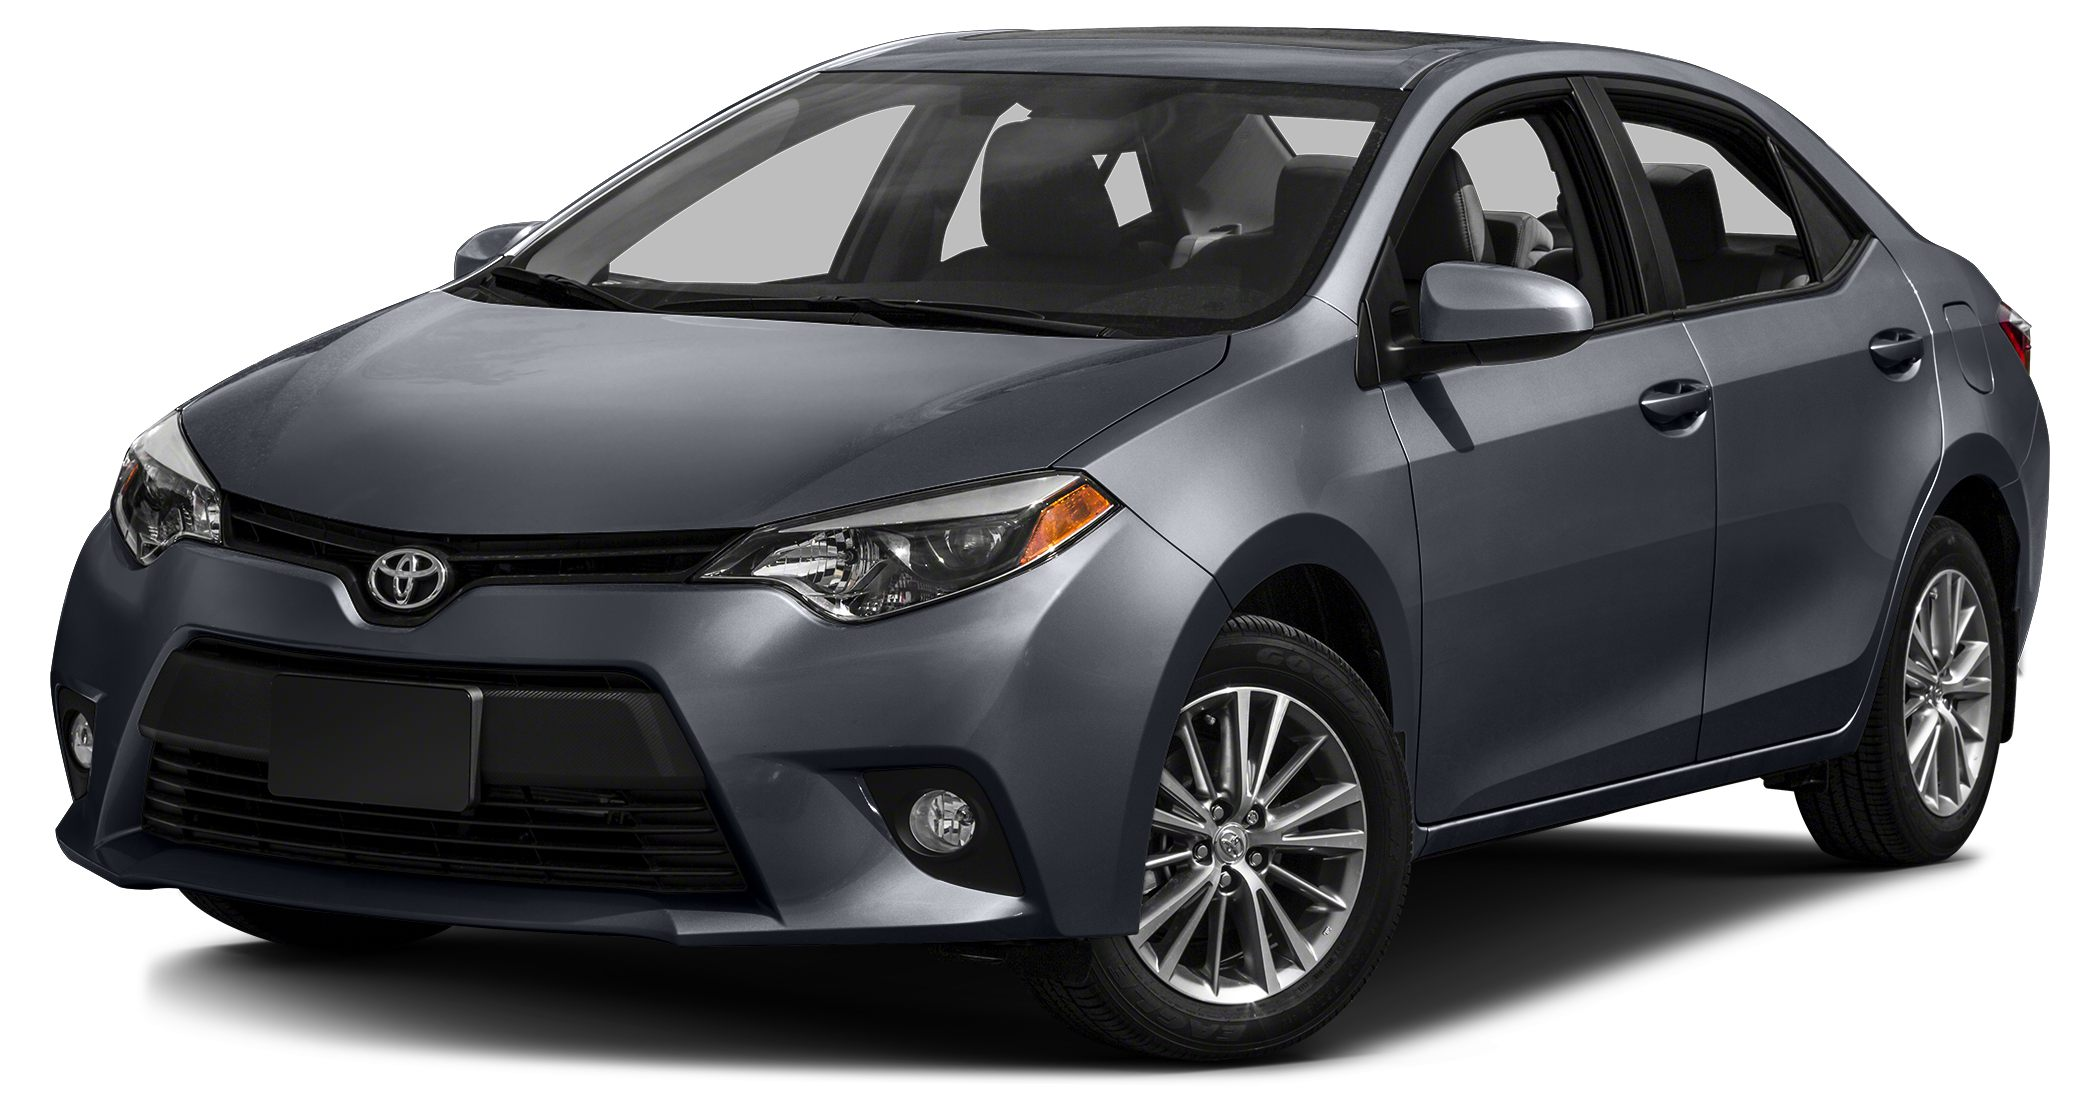 2015 Toyota Corolla LE Eco CARFAX 1-Owner LE ECO trim FUEL EFFICIENT 42 MPG Hwy30 MPG City Blu